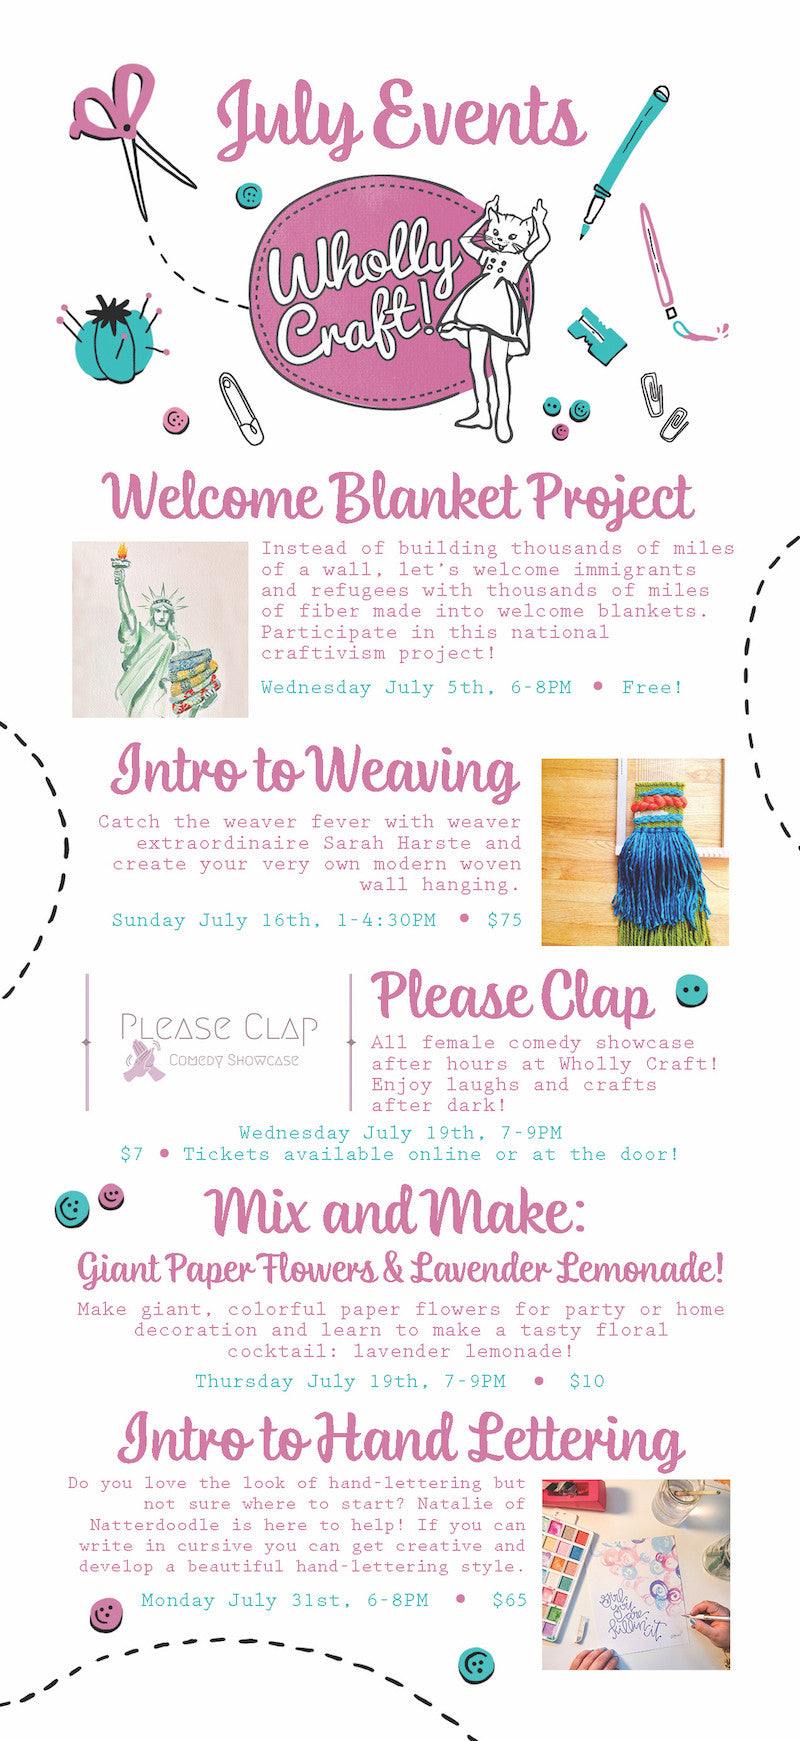 craft workshops weaving workshop hand lettering workshop columbus ohio comedy female comedy giant paper flowers welcome blanket